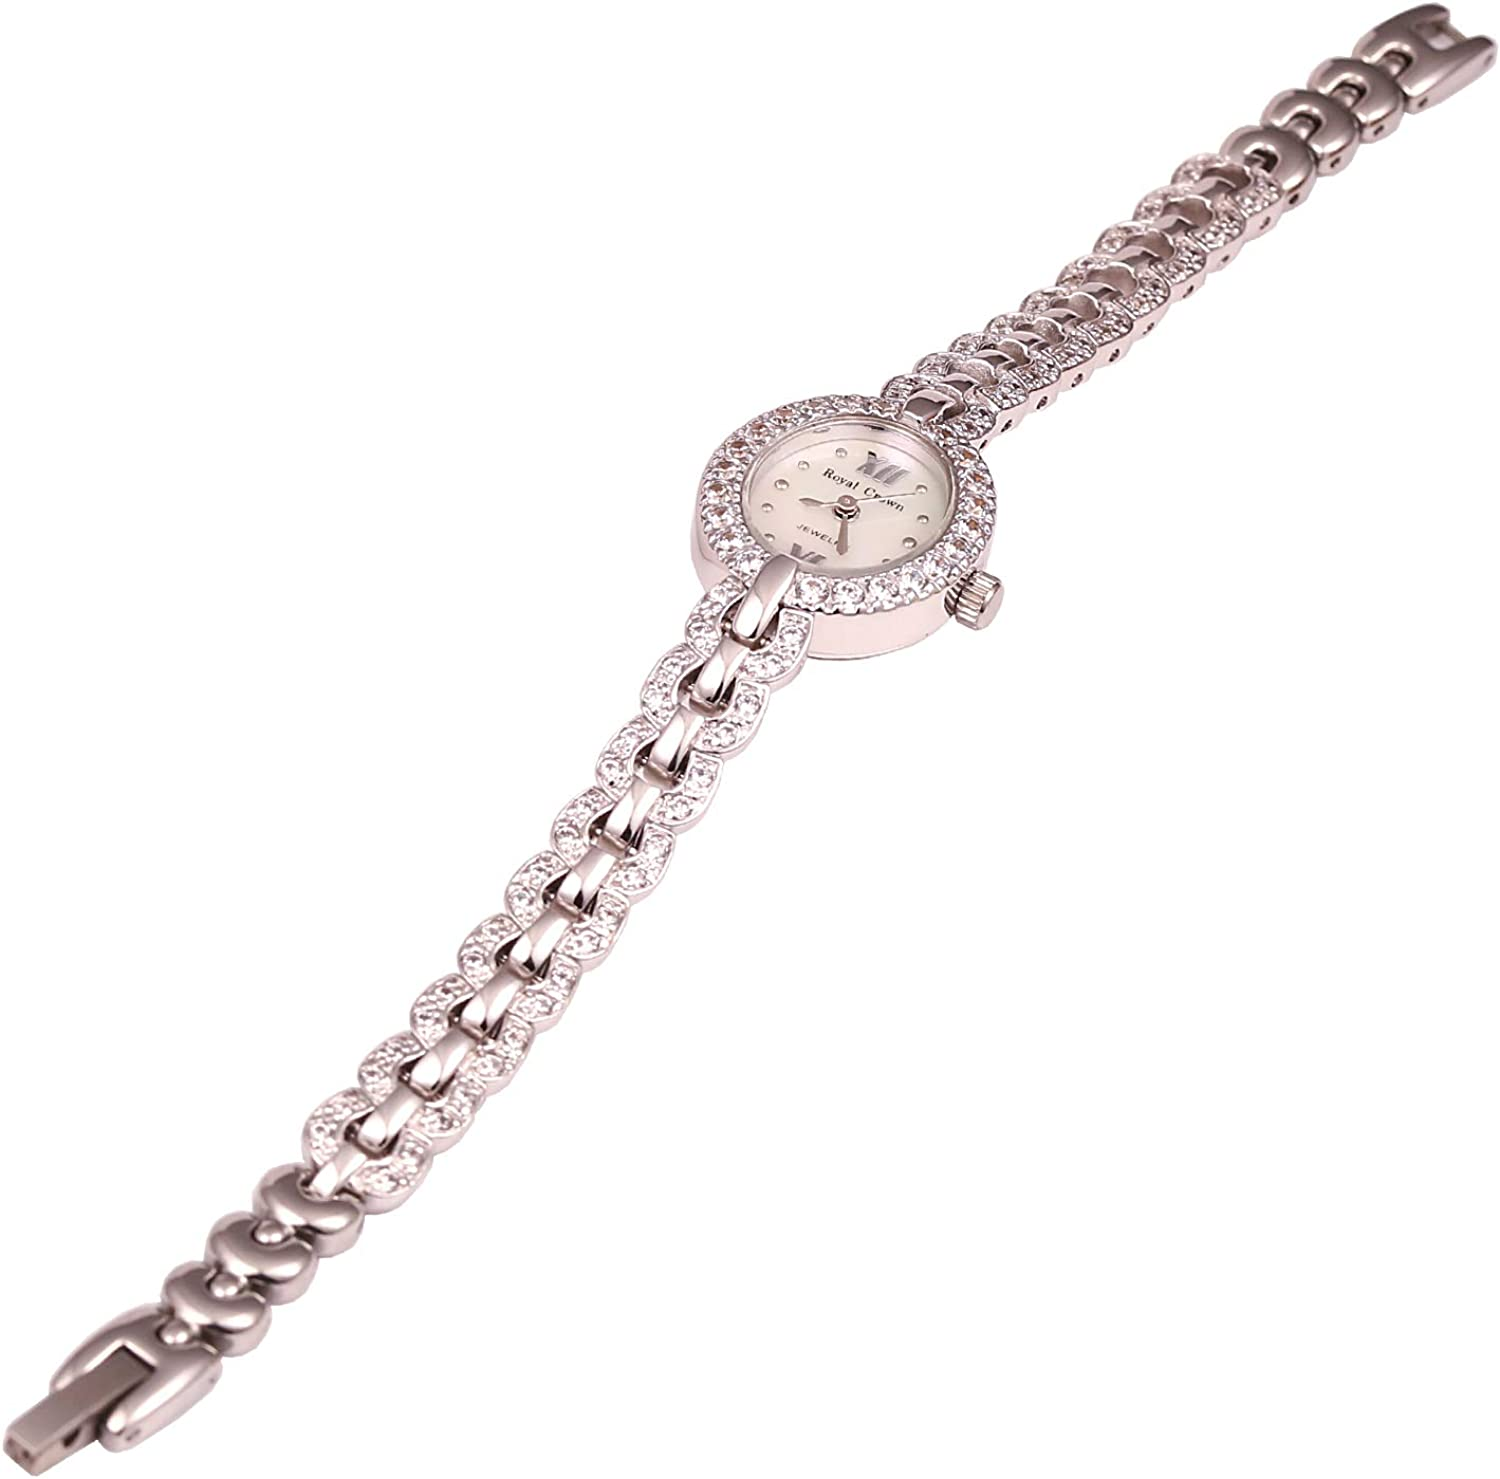 RC ROYAL CROWN Women's Crystal-Accented Luxury Silvery-Tone Bangle Watch Jewelry Series Women Fashion Wrist Watches silvery